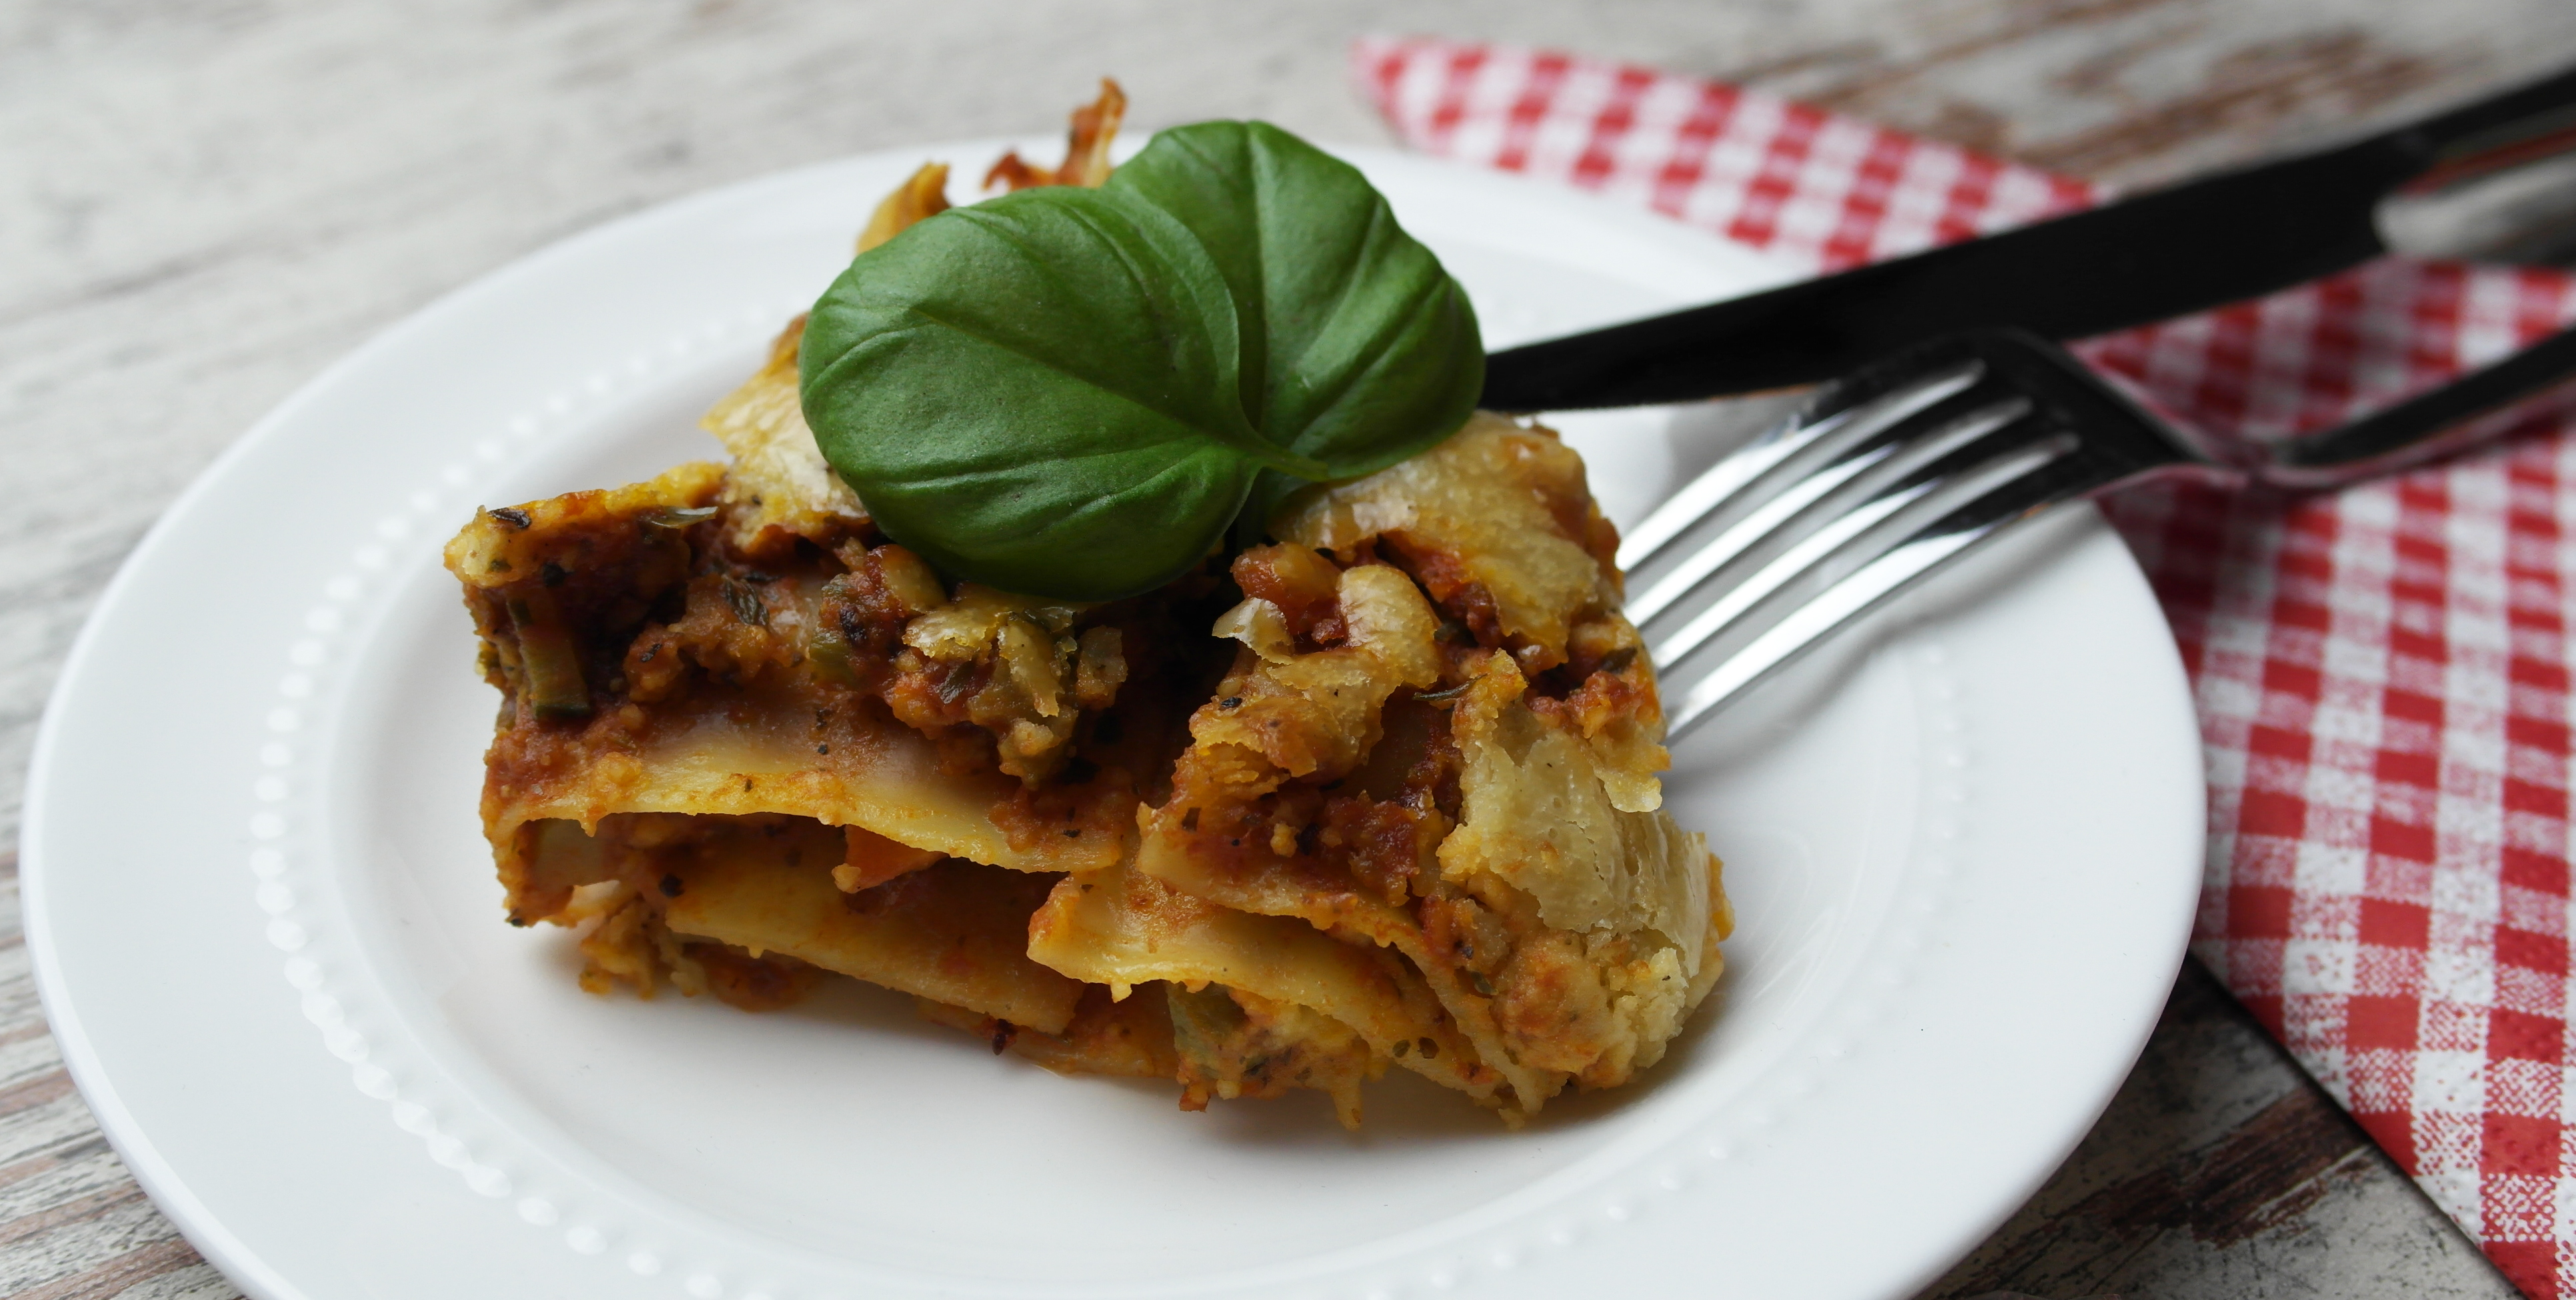 love is in the air: vegane tofu lasagne mit mandelmus-käse oder vegane bolognese sauce | vegan tofu lasagna with almond paste cheese or: yummy vegan sauce bolognese ❤